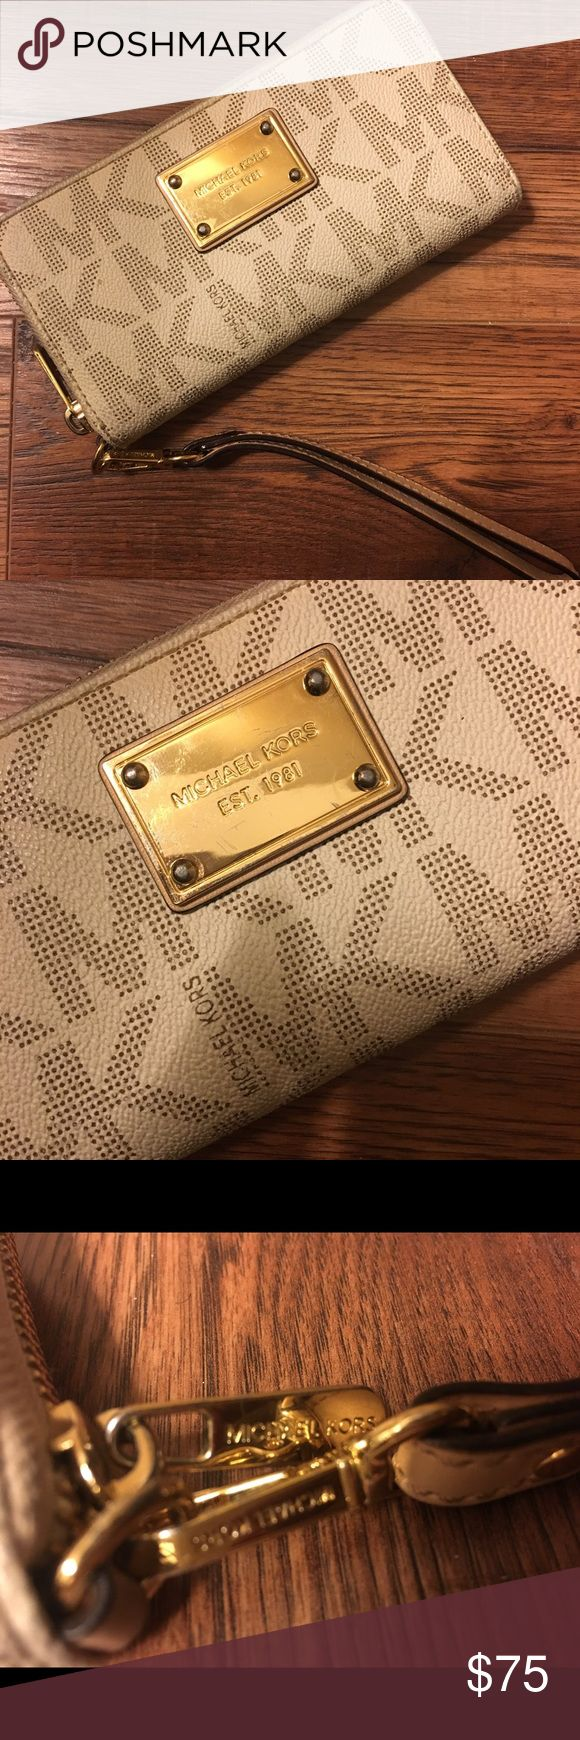 Michael Kors Jet Set Signature Continental Wallet Like new Michael Kors Signature 'MK' wallet w/zipper. Includes strap to wear around the wrist. 3 compartments including a internal zipper for change. Interior lined w/leather and MK logo. Excellent condition, no stains etc. Michael Kors Bags Wallets